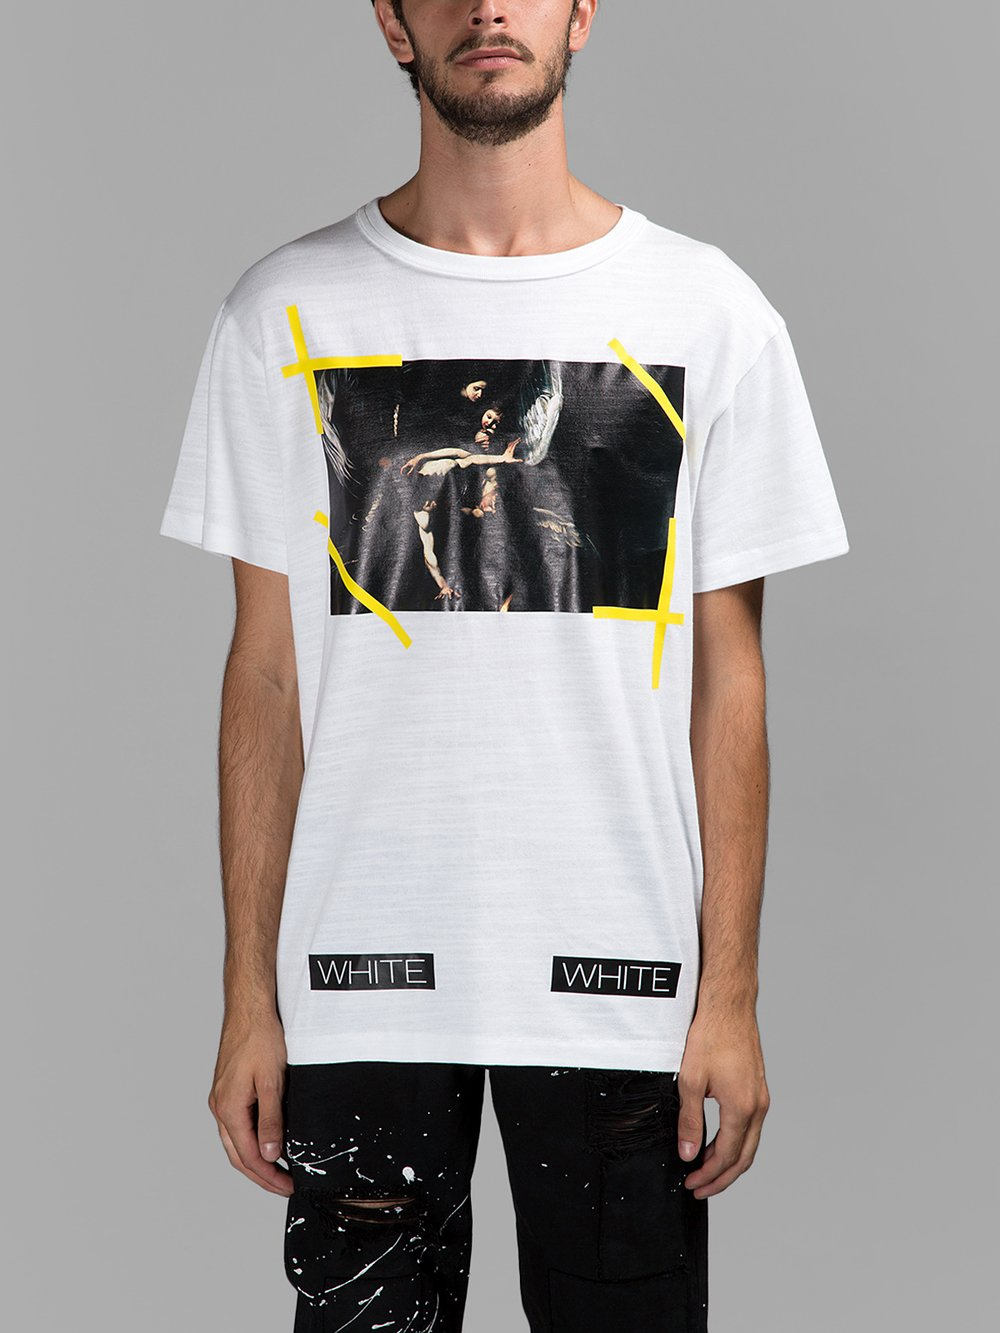 Off-White C/O Virgil Abloh - T-shirts - Antonioli.eu